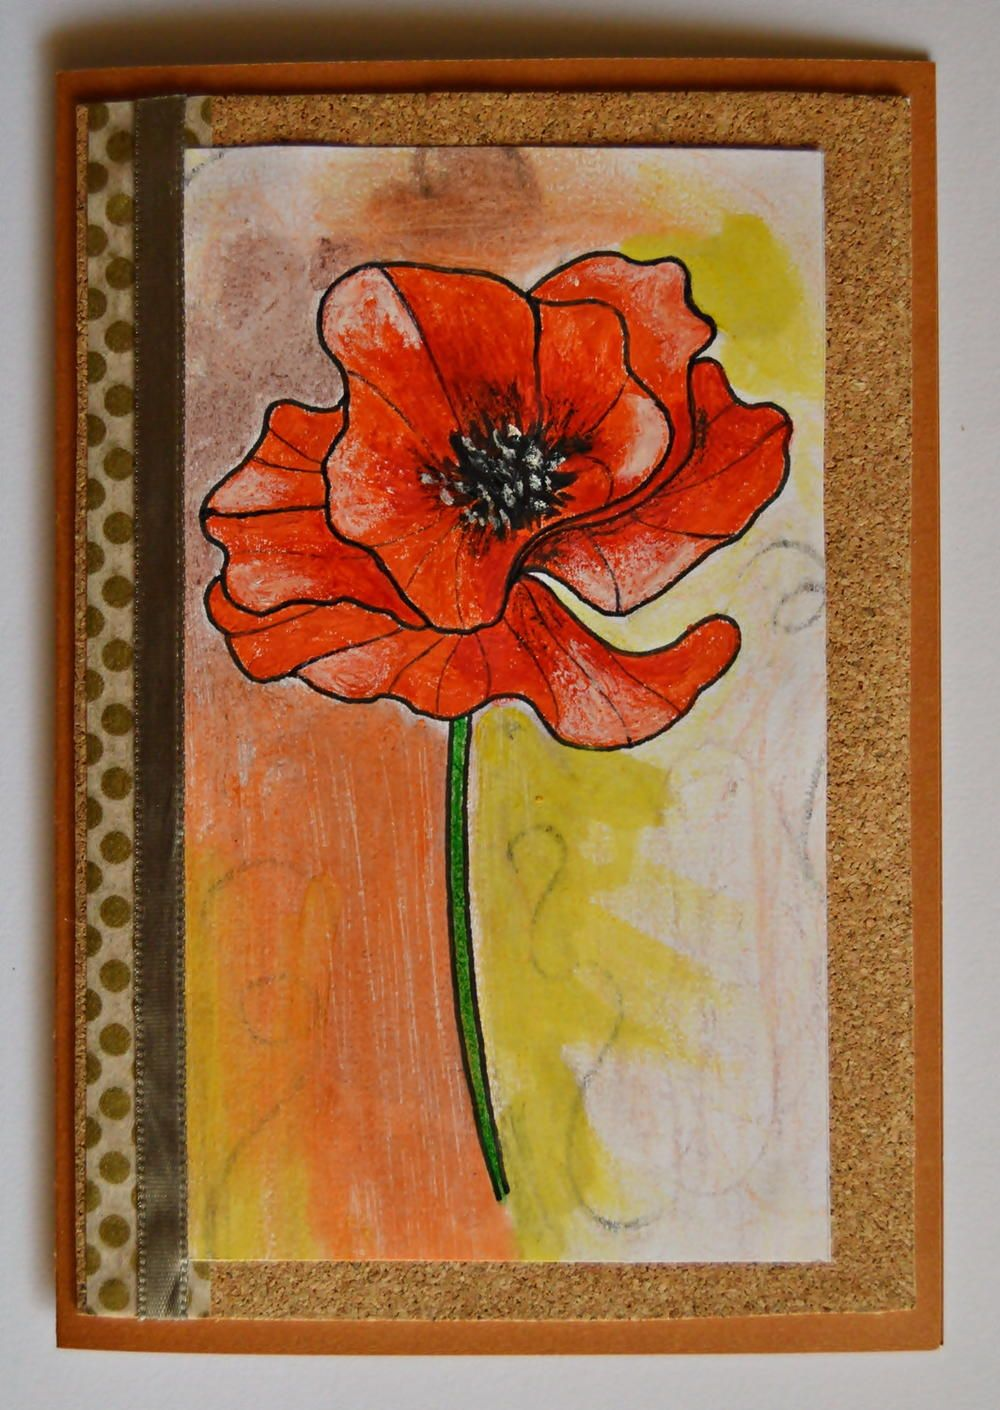 Rustic Red Poppy Handmade Card   Adult coloring, Poppy flowers and Cards